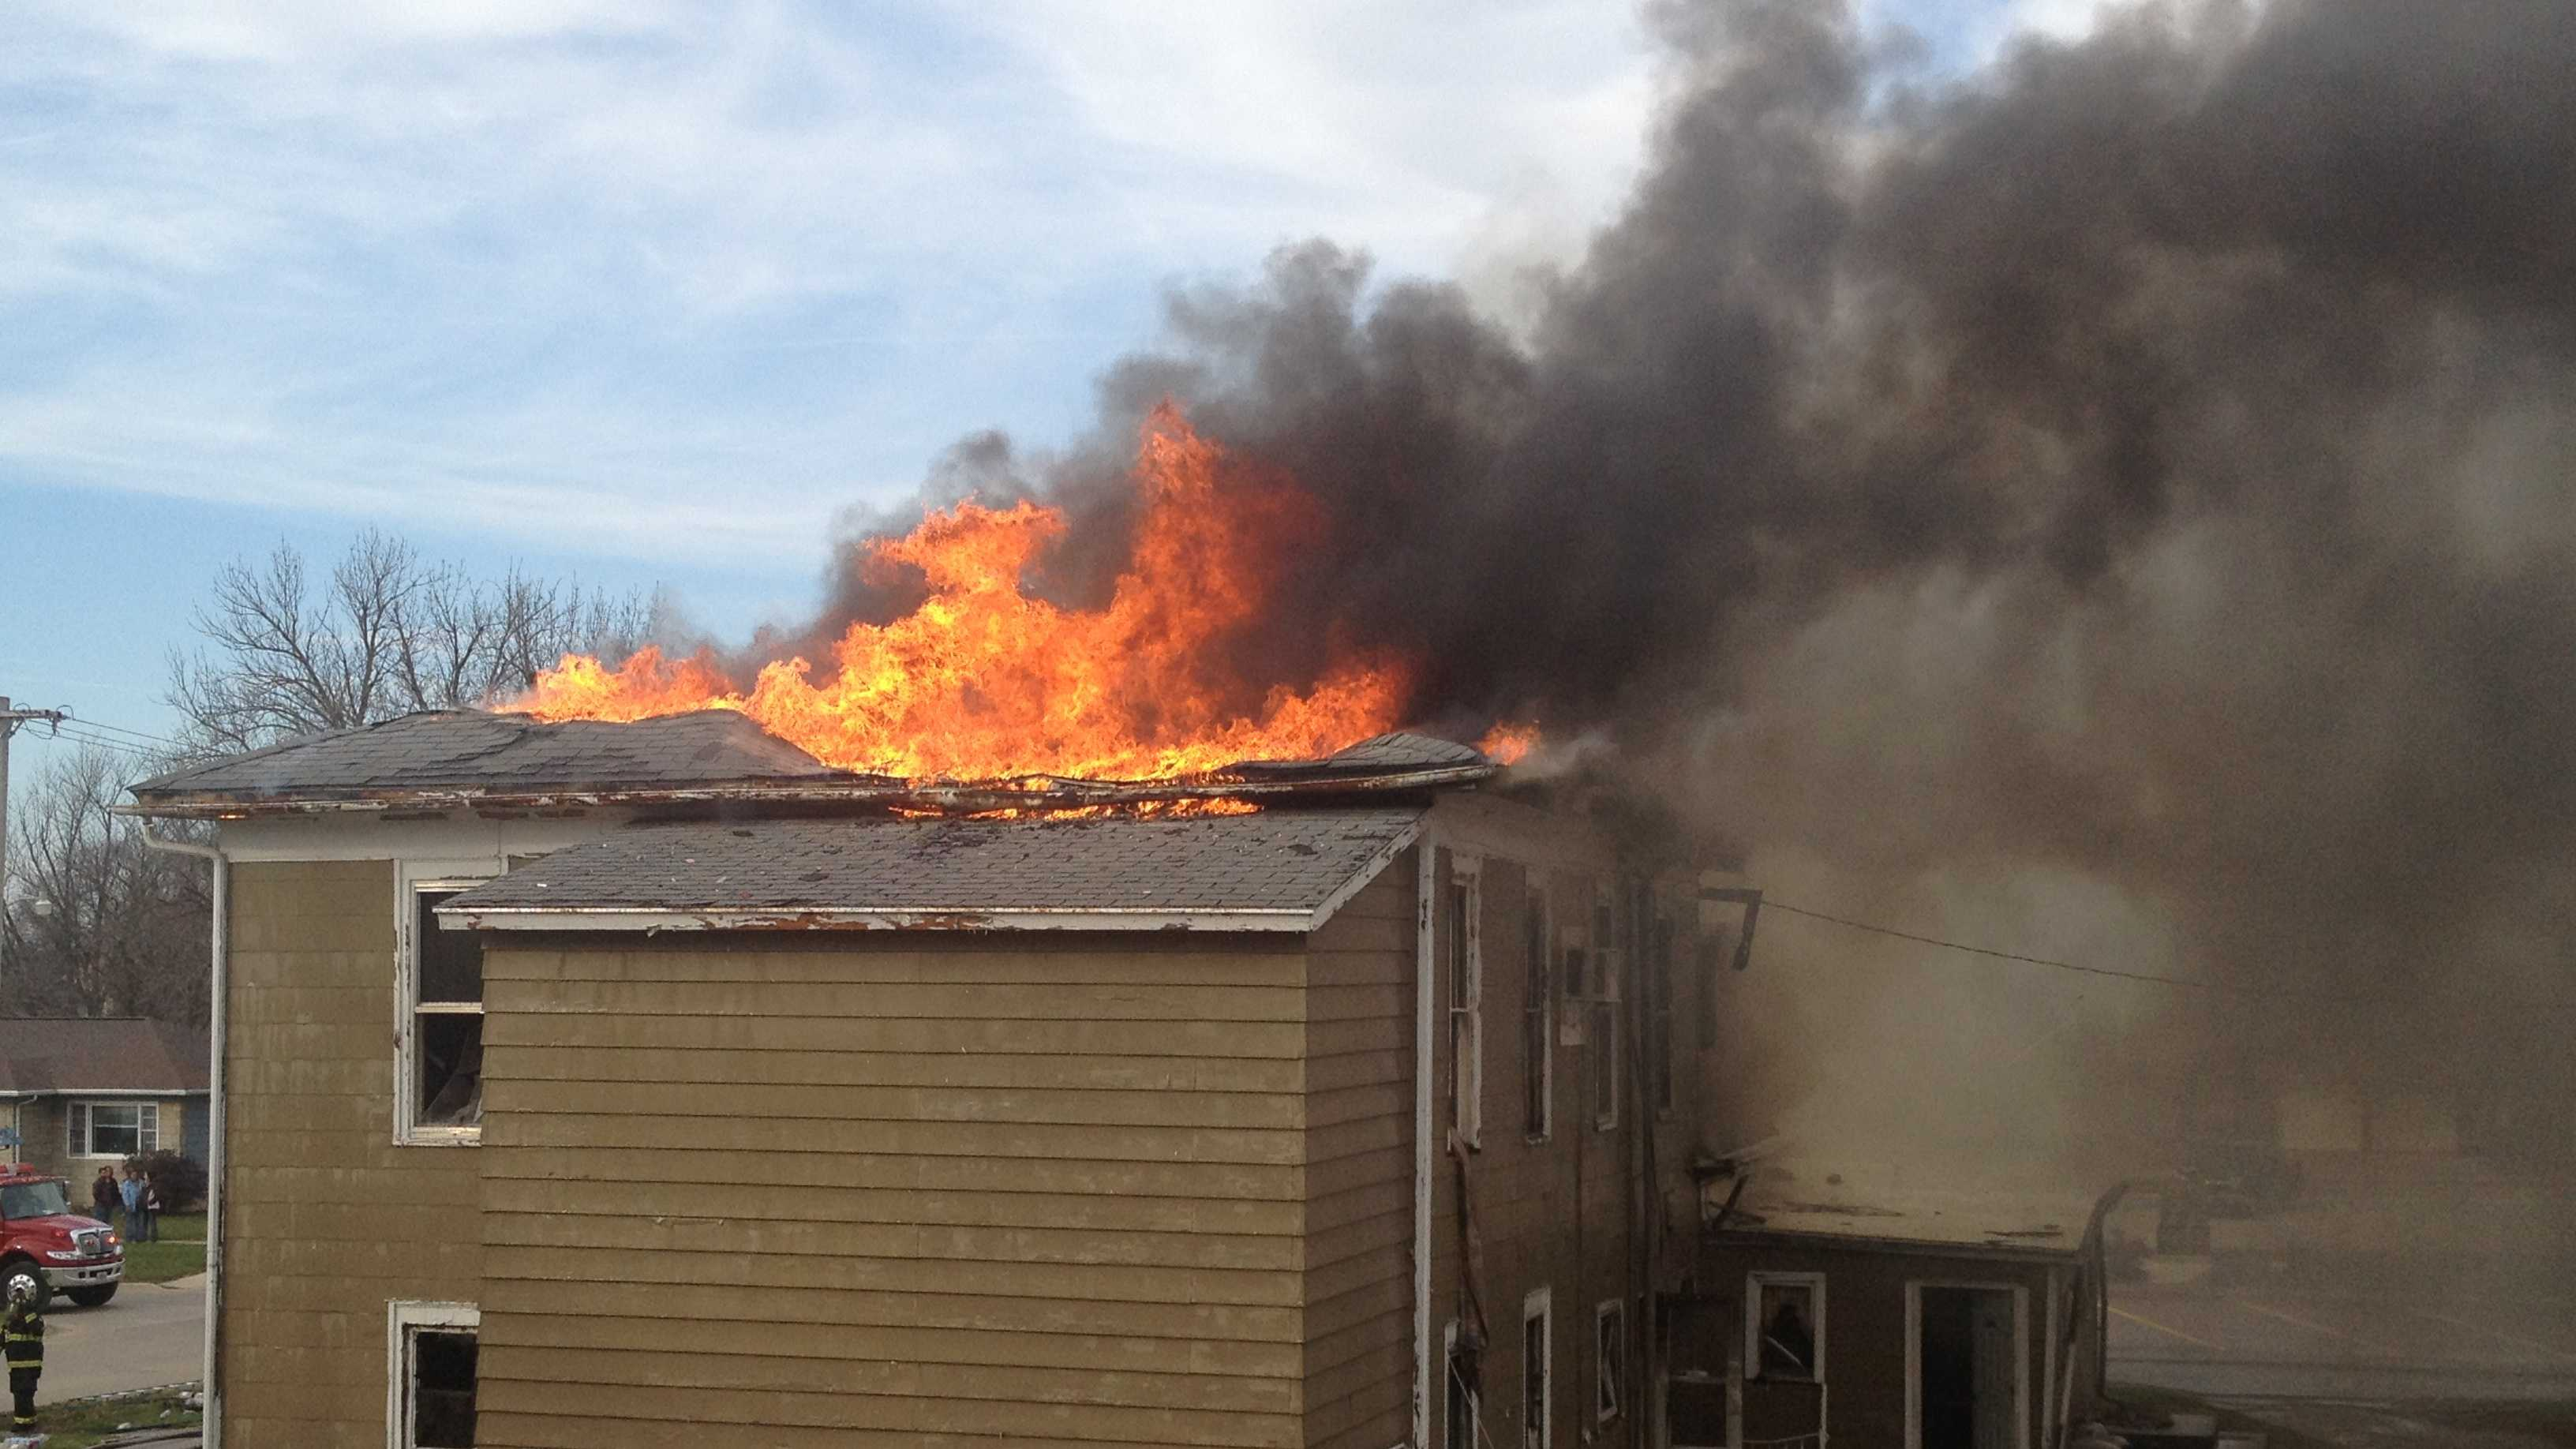 A fire destroyed an apartment building on Nov. 22.